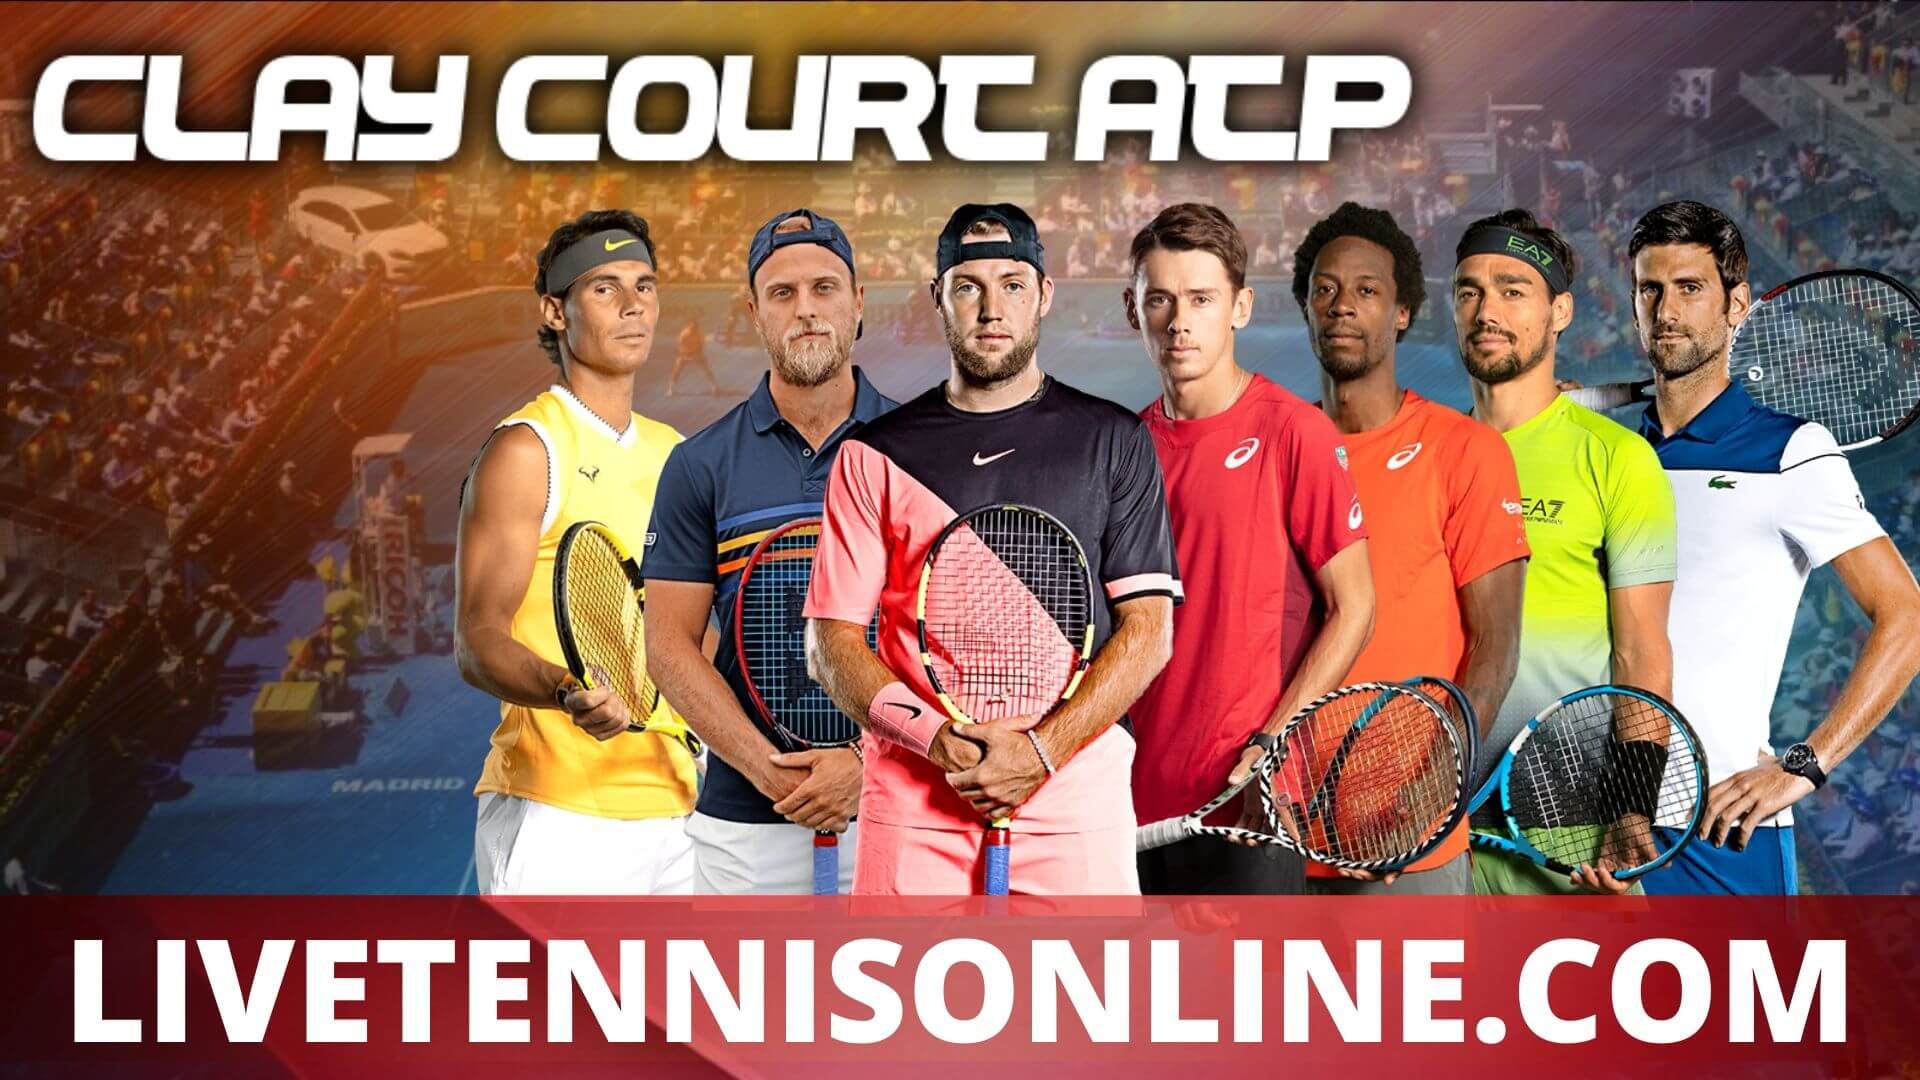 u.s.-men-clay-court-championship-live-stream-2019